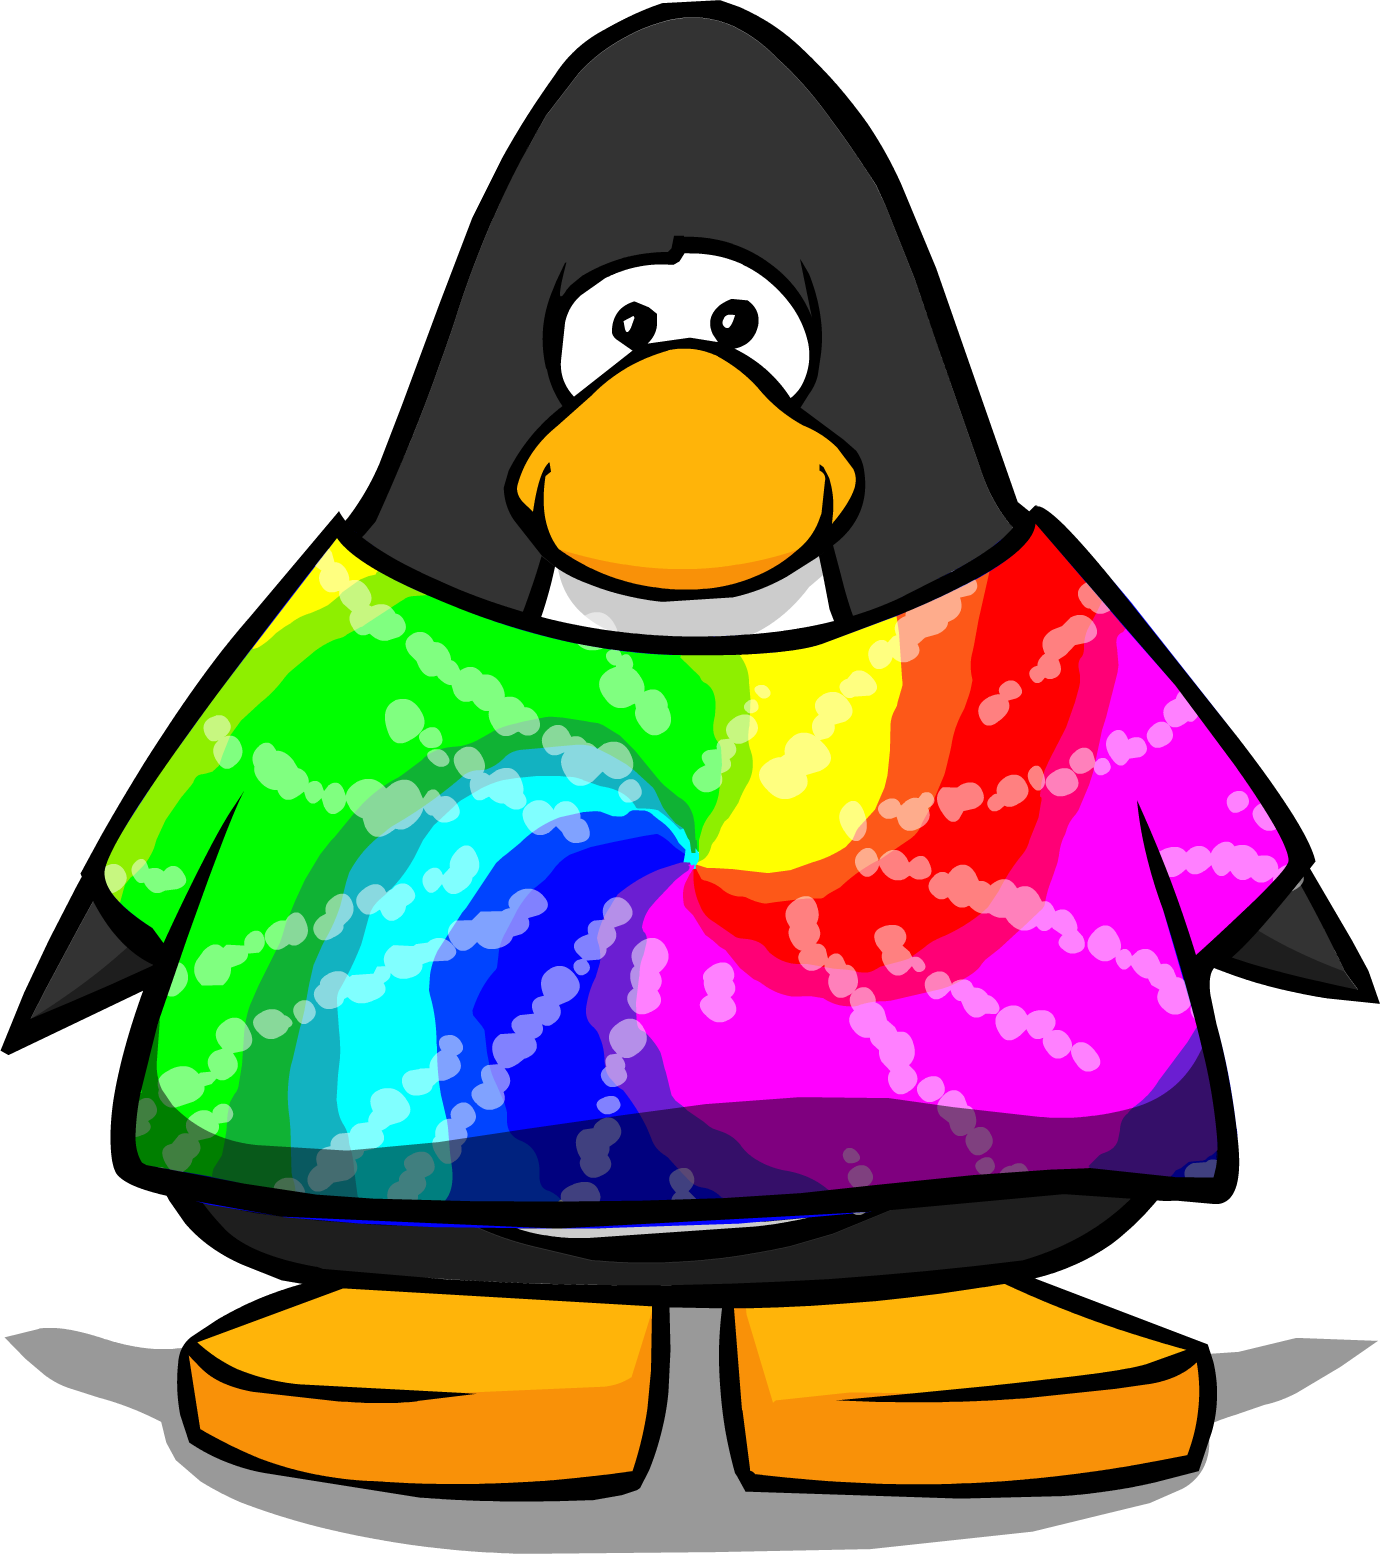 Tie dye heart clipart clip art black and white stock Image - Tie Dye Shirt cutout.PNG | Club Penguin Wiki | FANDOM ... clip art black and white stock